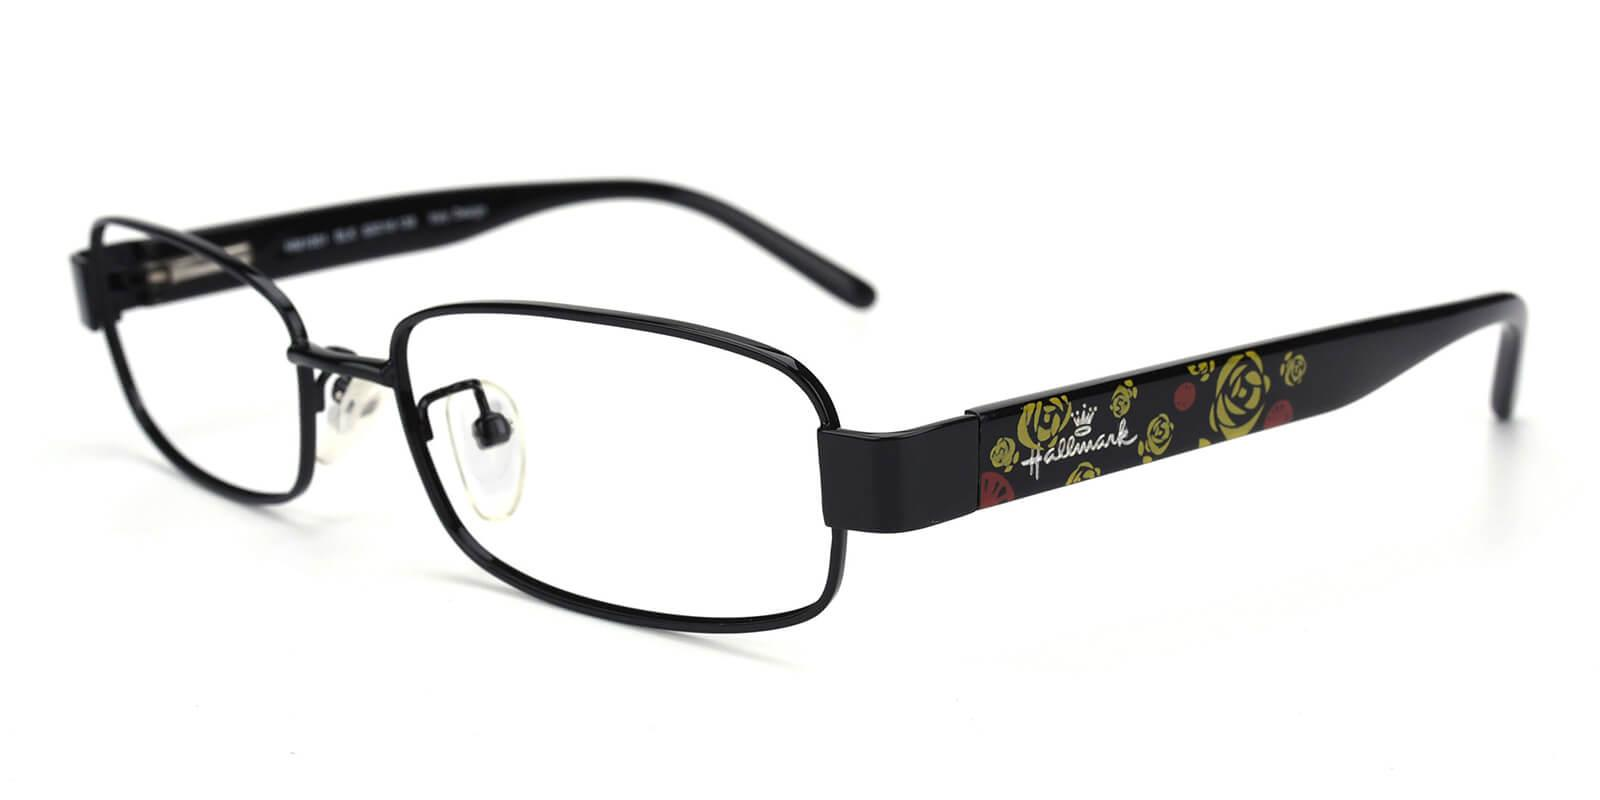 Katelley-Black-Rectangle-Combination-Eyeglasses-additional1